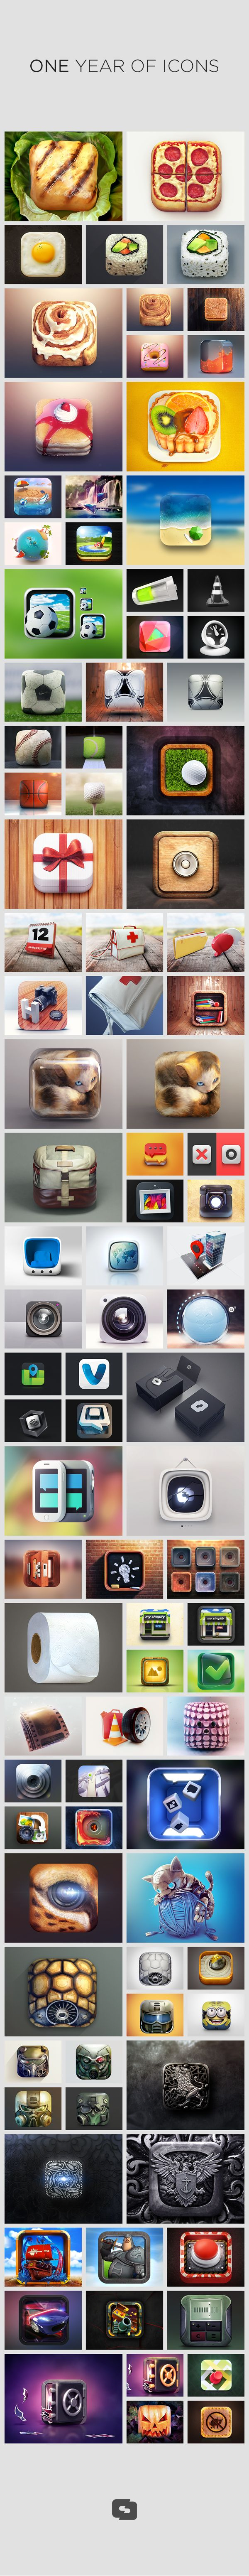 One Year of Icons